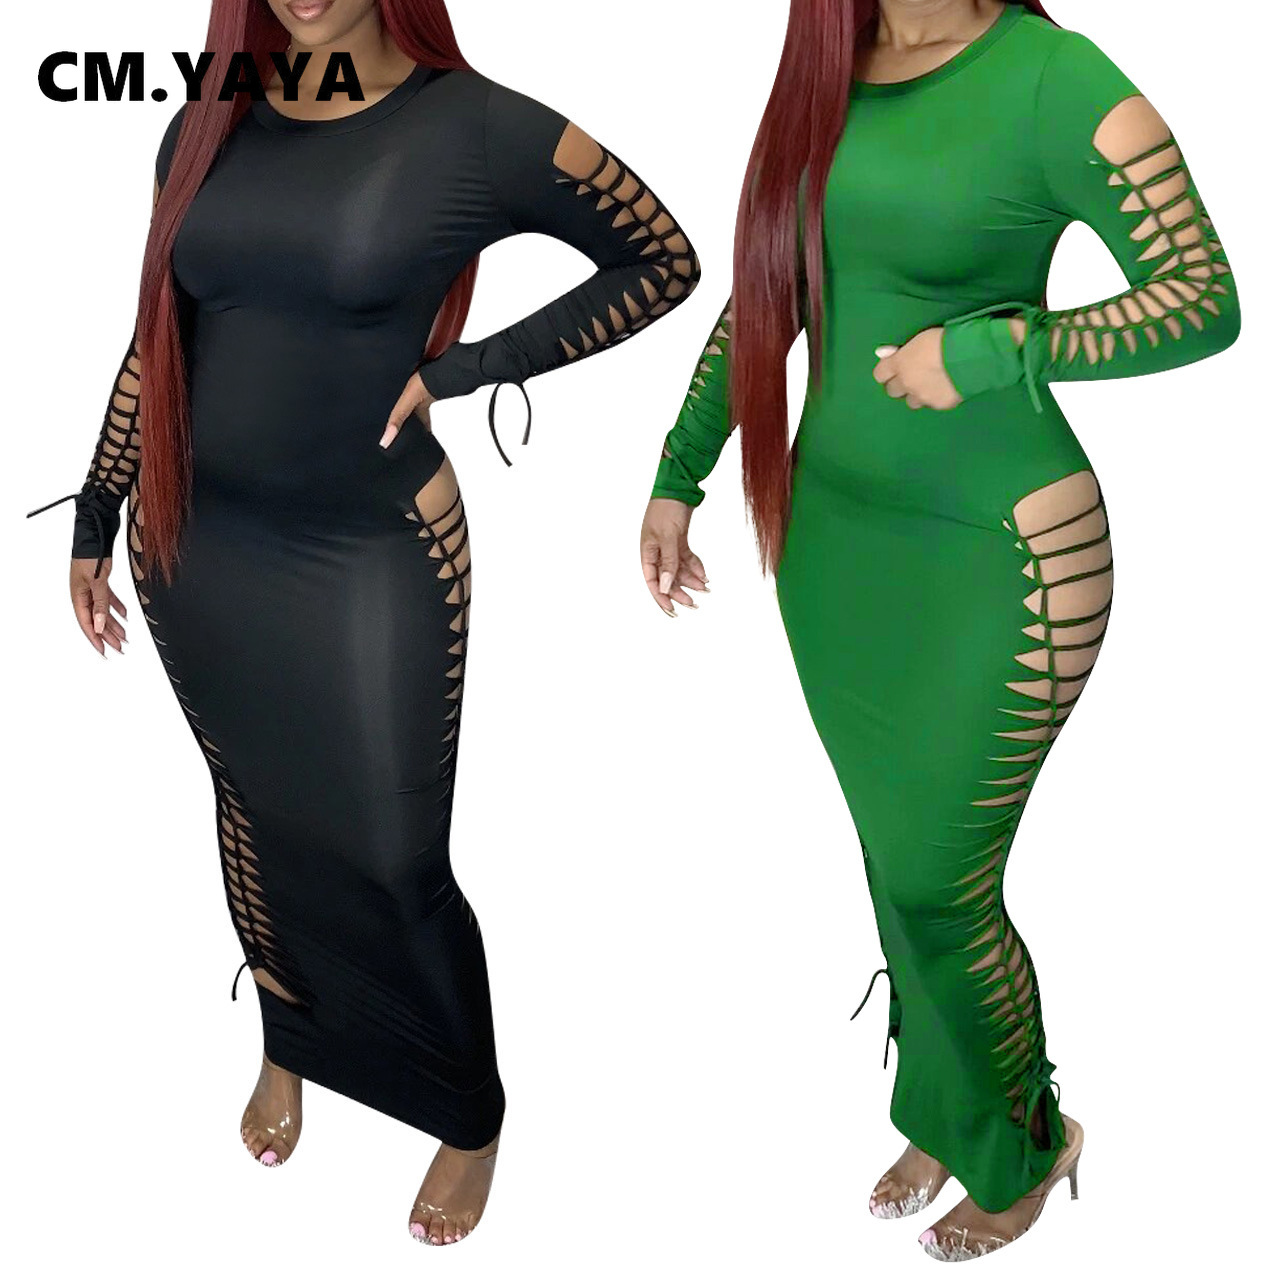 CM.YAYA 2021 Spring Women Long Sleeve Lace Up Side Sexy Bodycon Maxi Dress Hollow Out Party Night Club Long Dresses Vestido|Dresses| - AliExpress